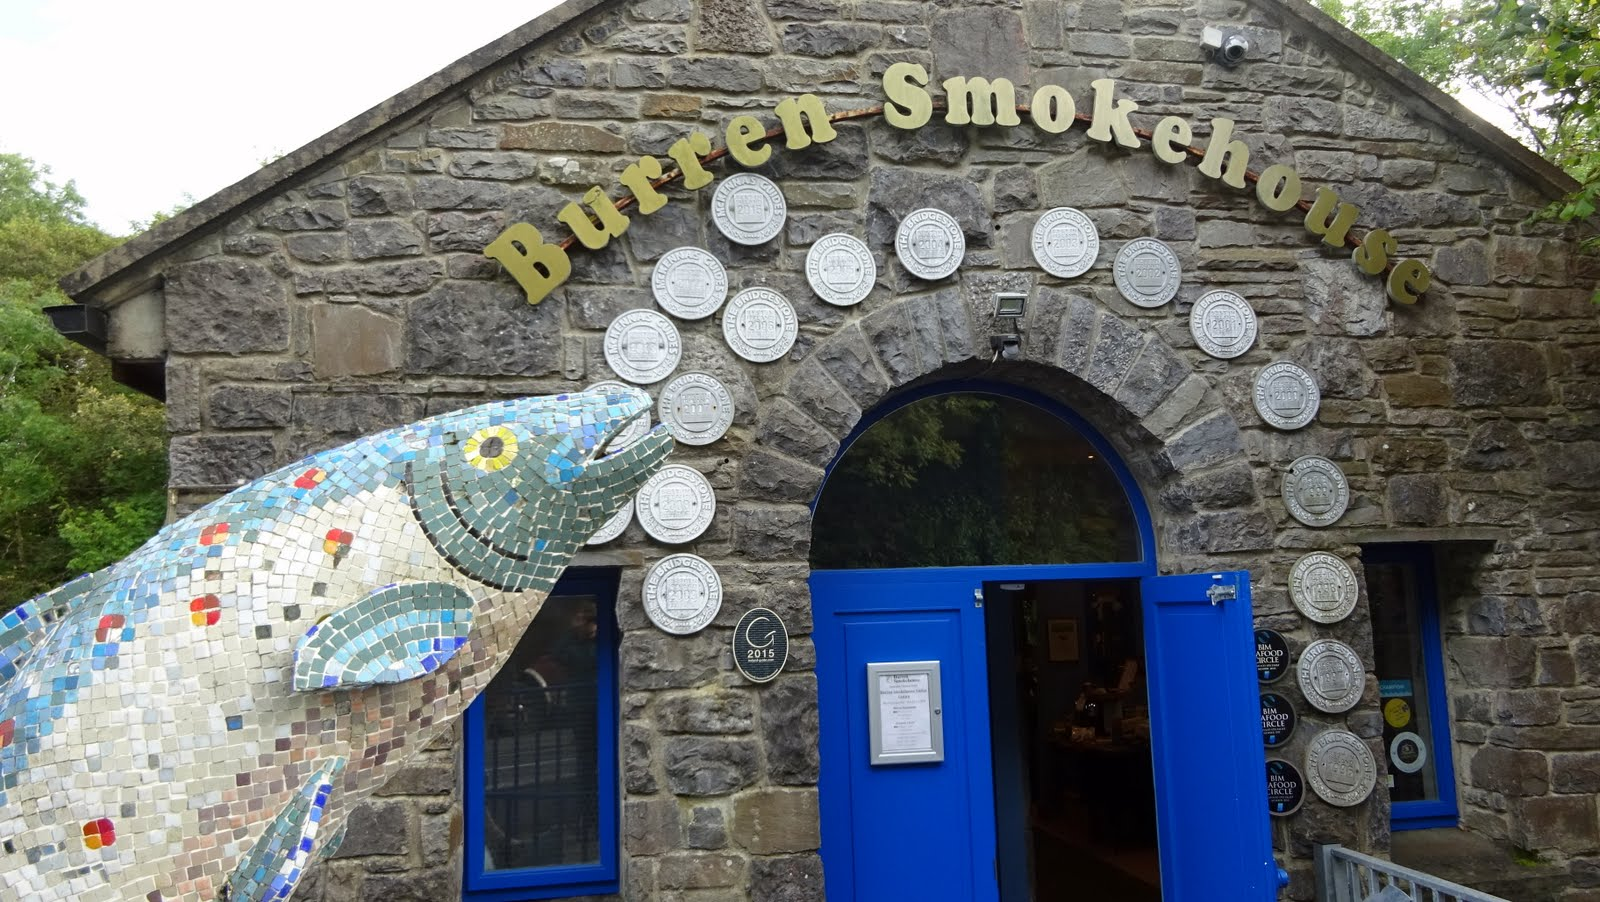 Burren Smokehouse recognised for sustainable sourcing and practices at Annual Green Awards